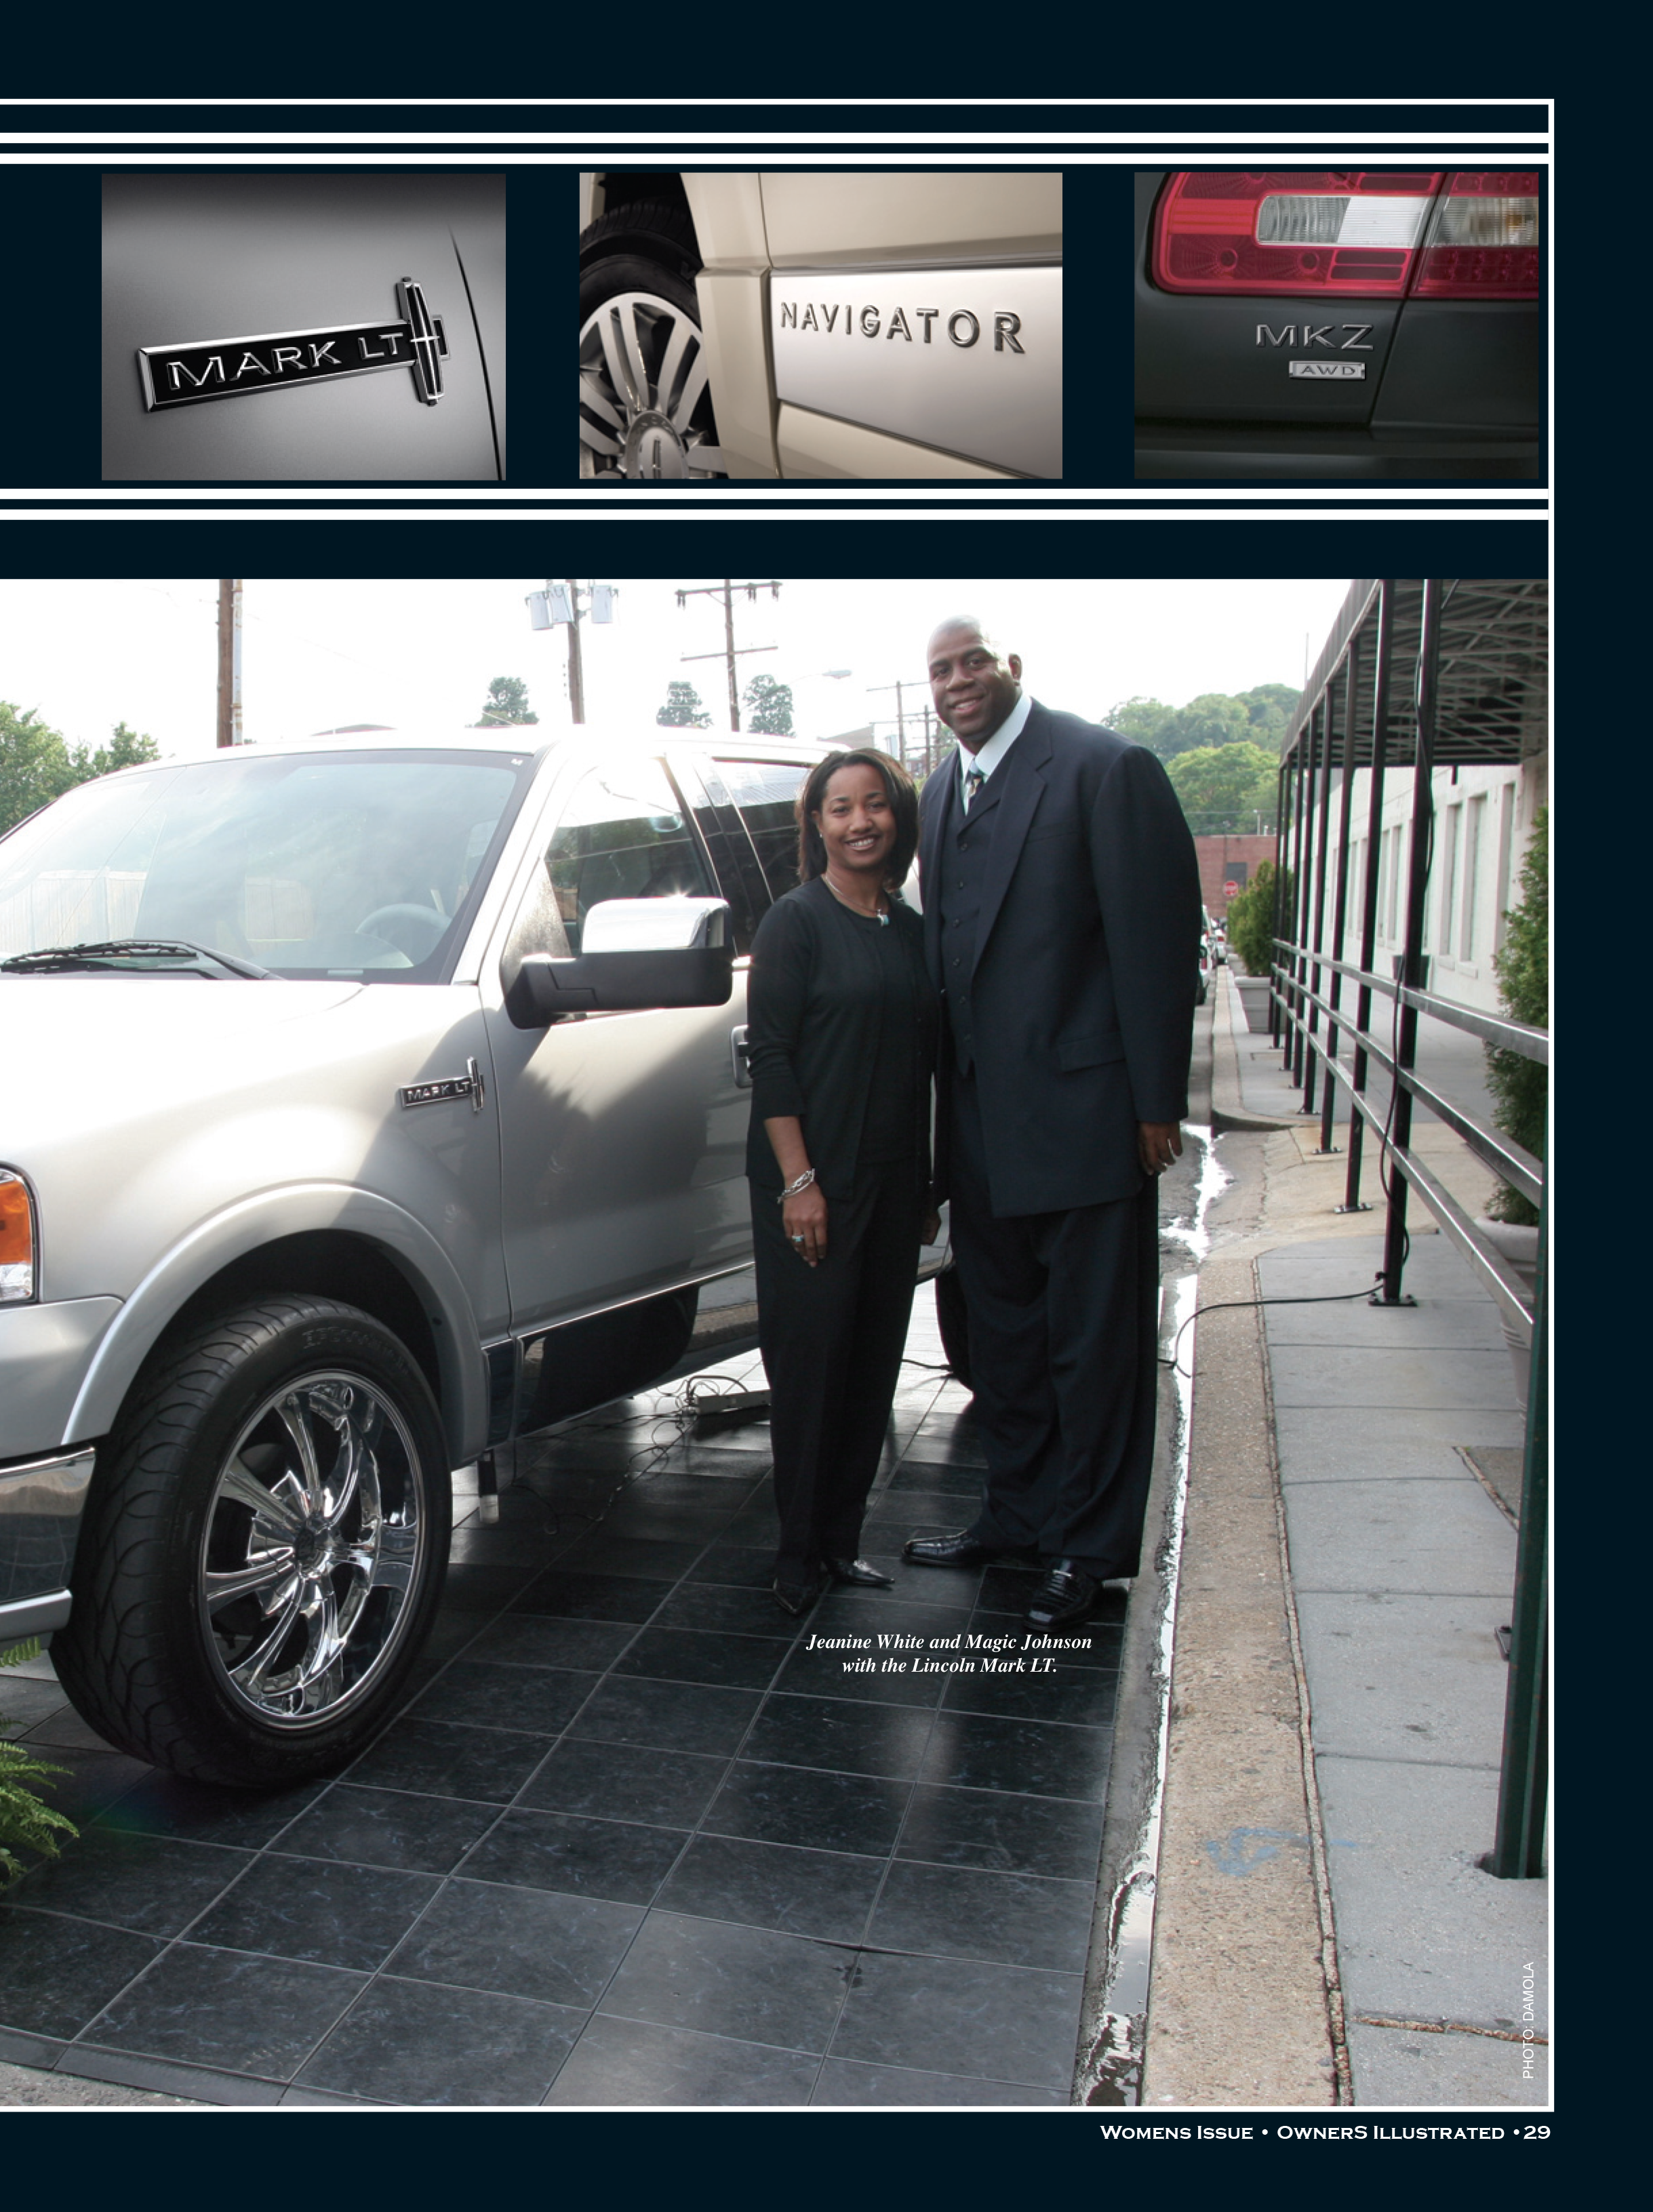 Magic Johnson and Jeanine White Lincoln